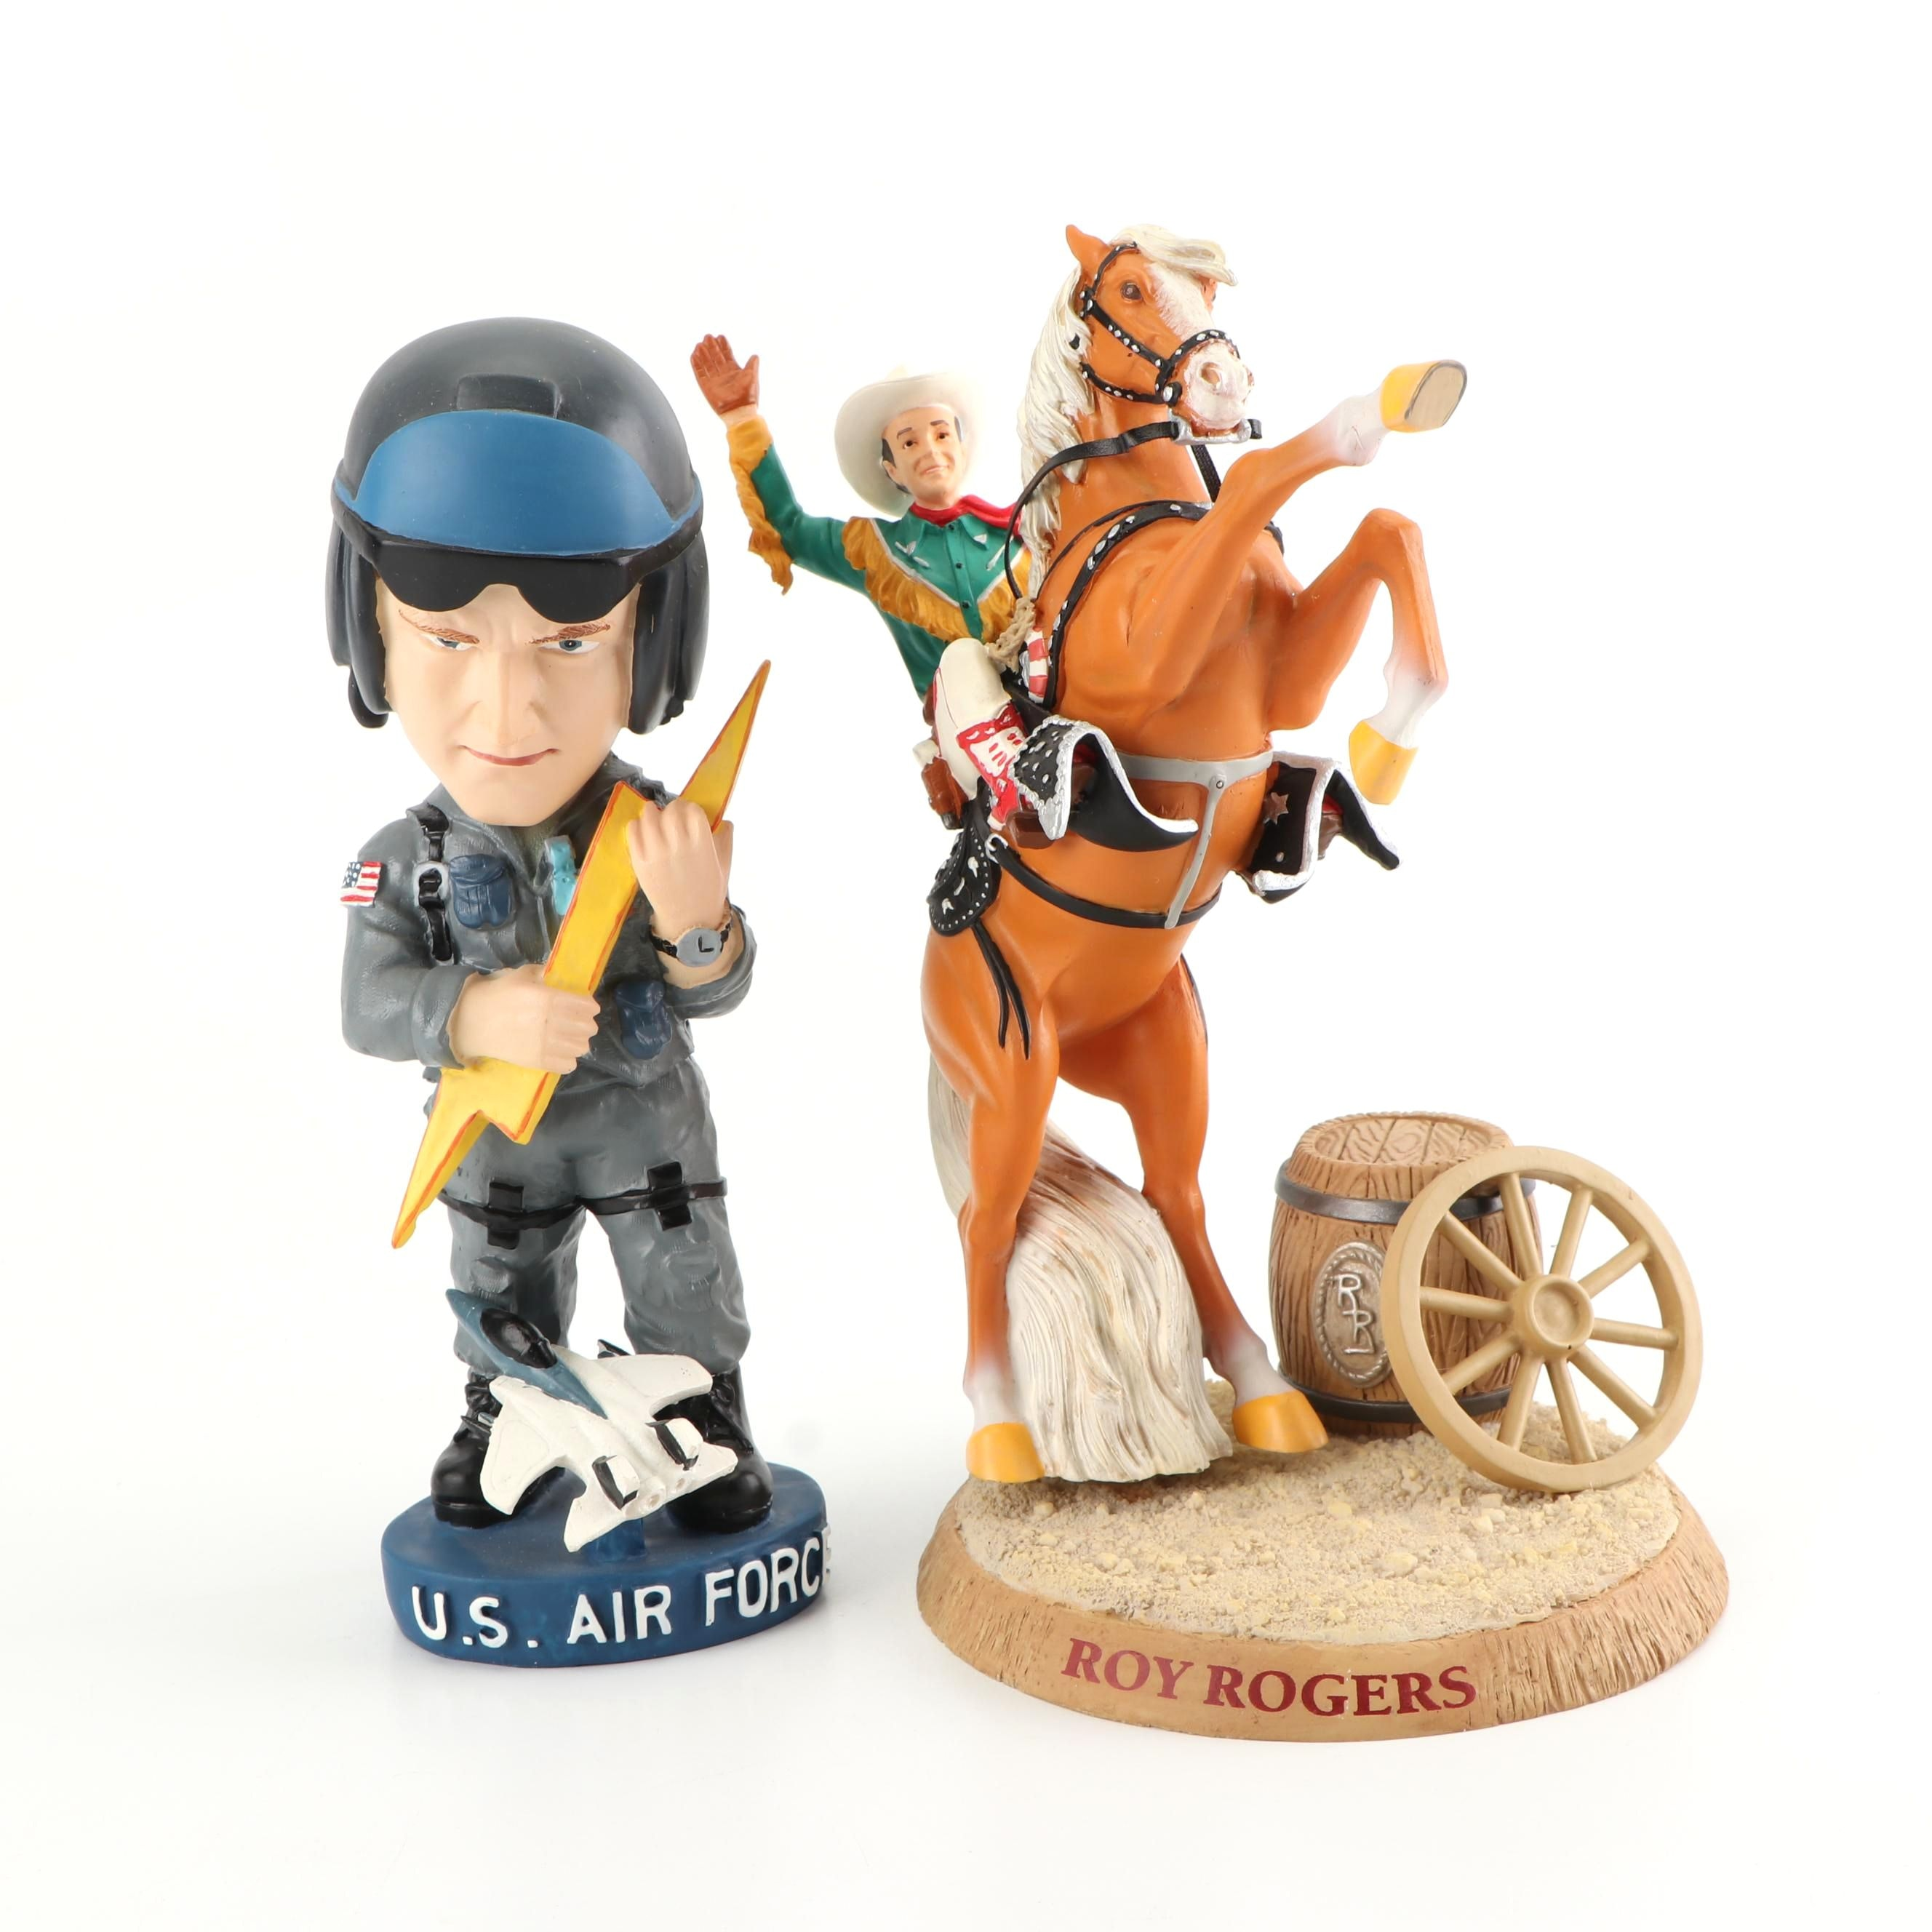 Roy Rogers and Trigger Figurine and a U.S. Air Force Bobblehead